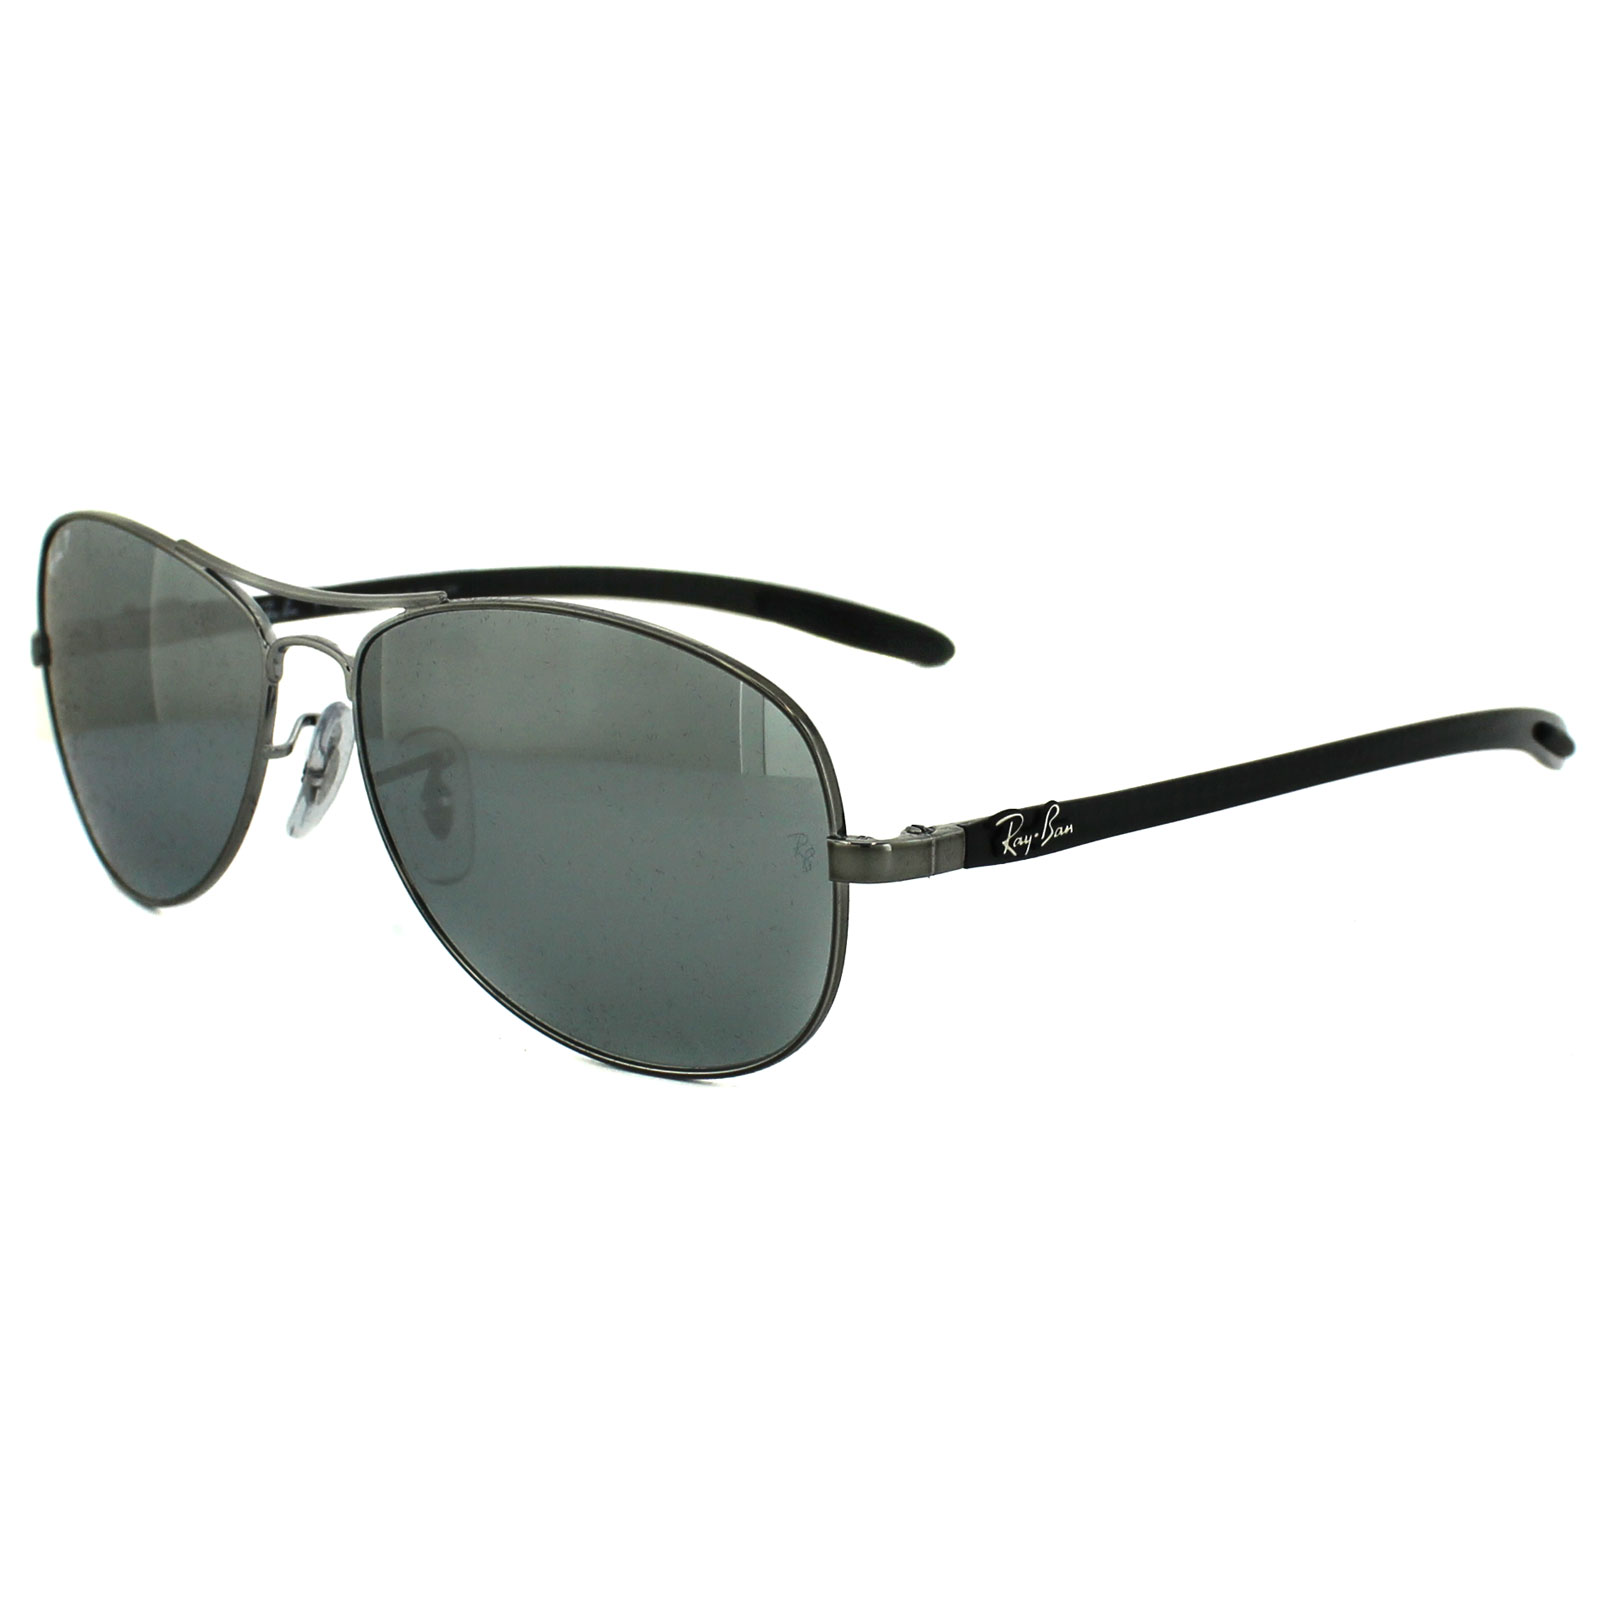 e1c259ccba Sentinel Ray-Ban Sunglasses 8301 004 K6 Shiny Gunmetal Grey Polarized